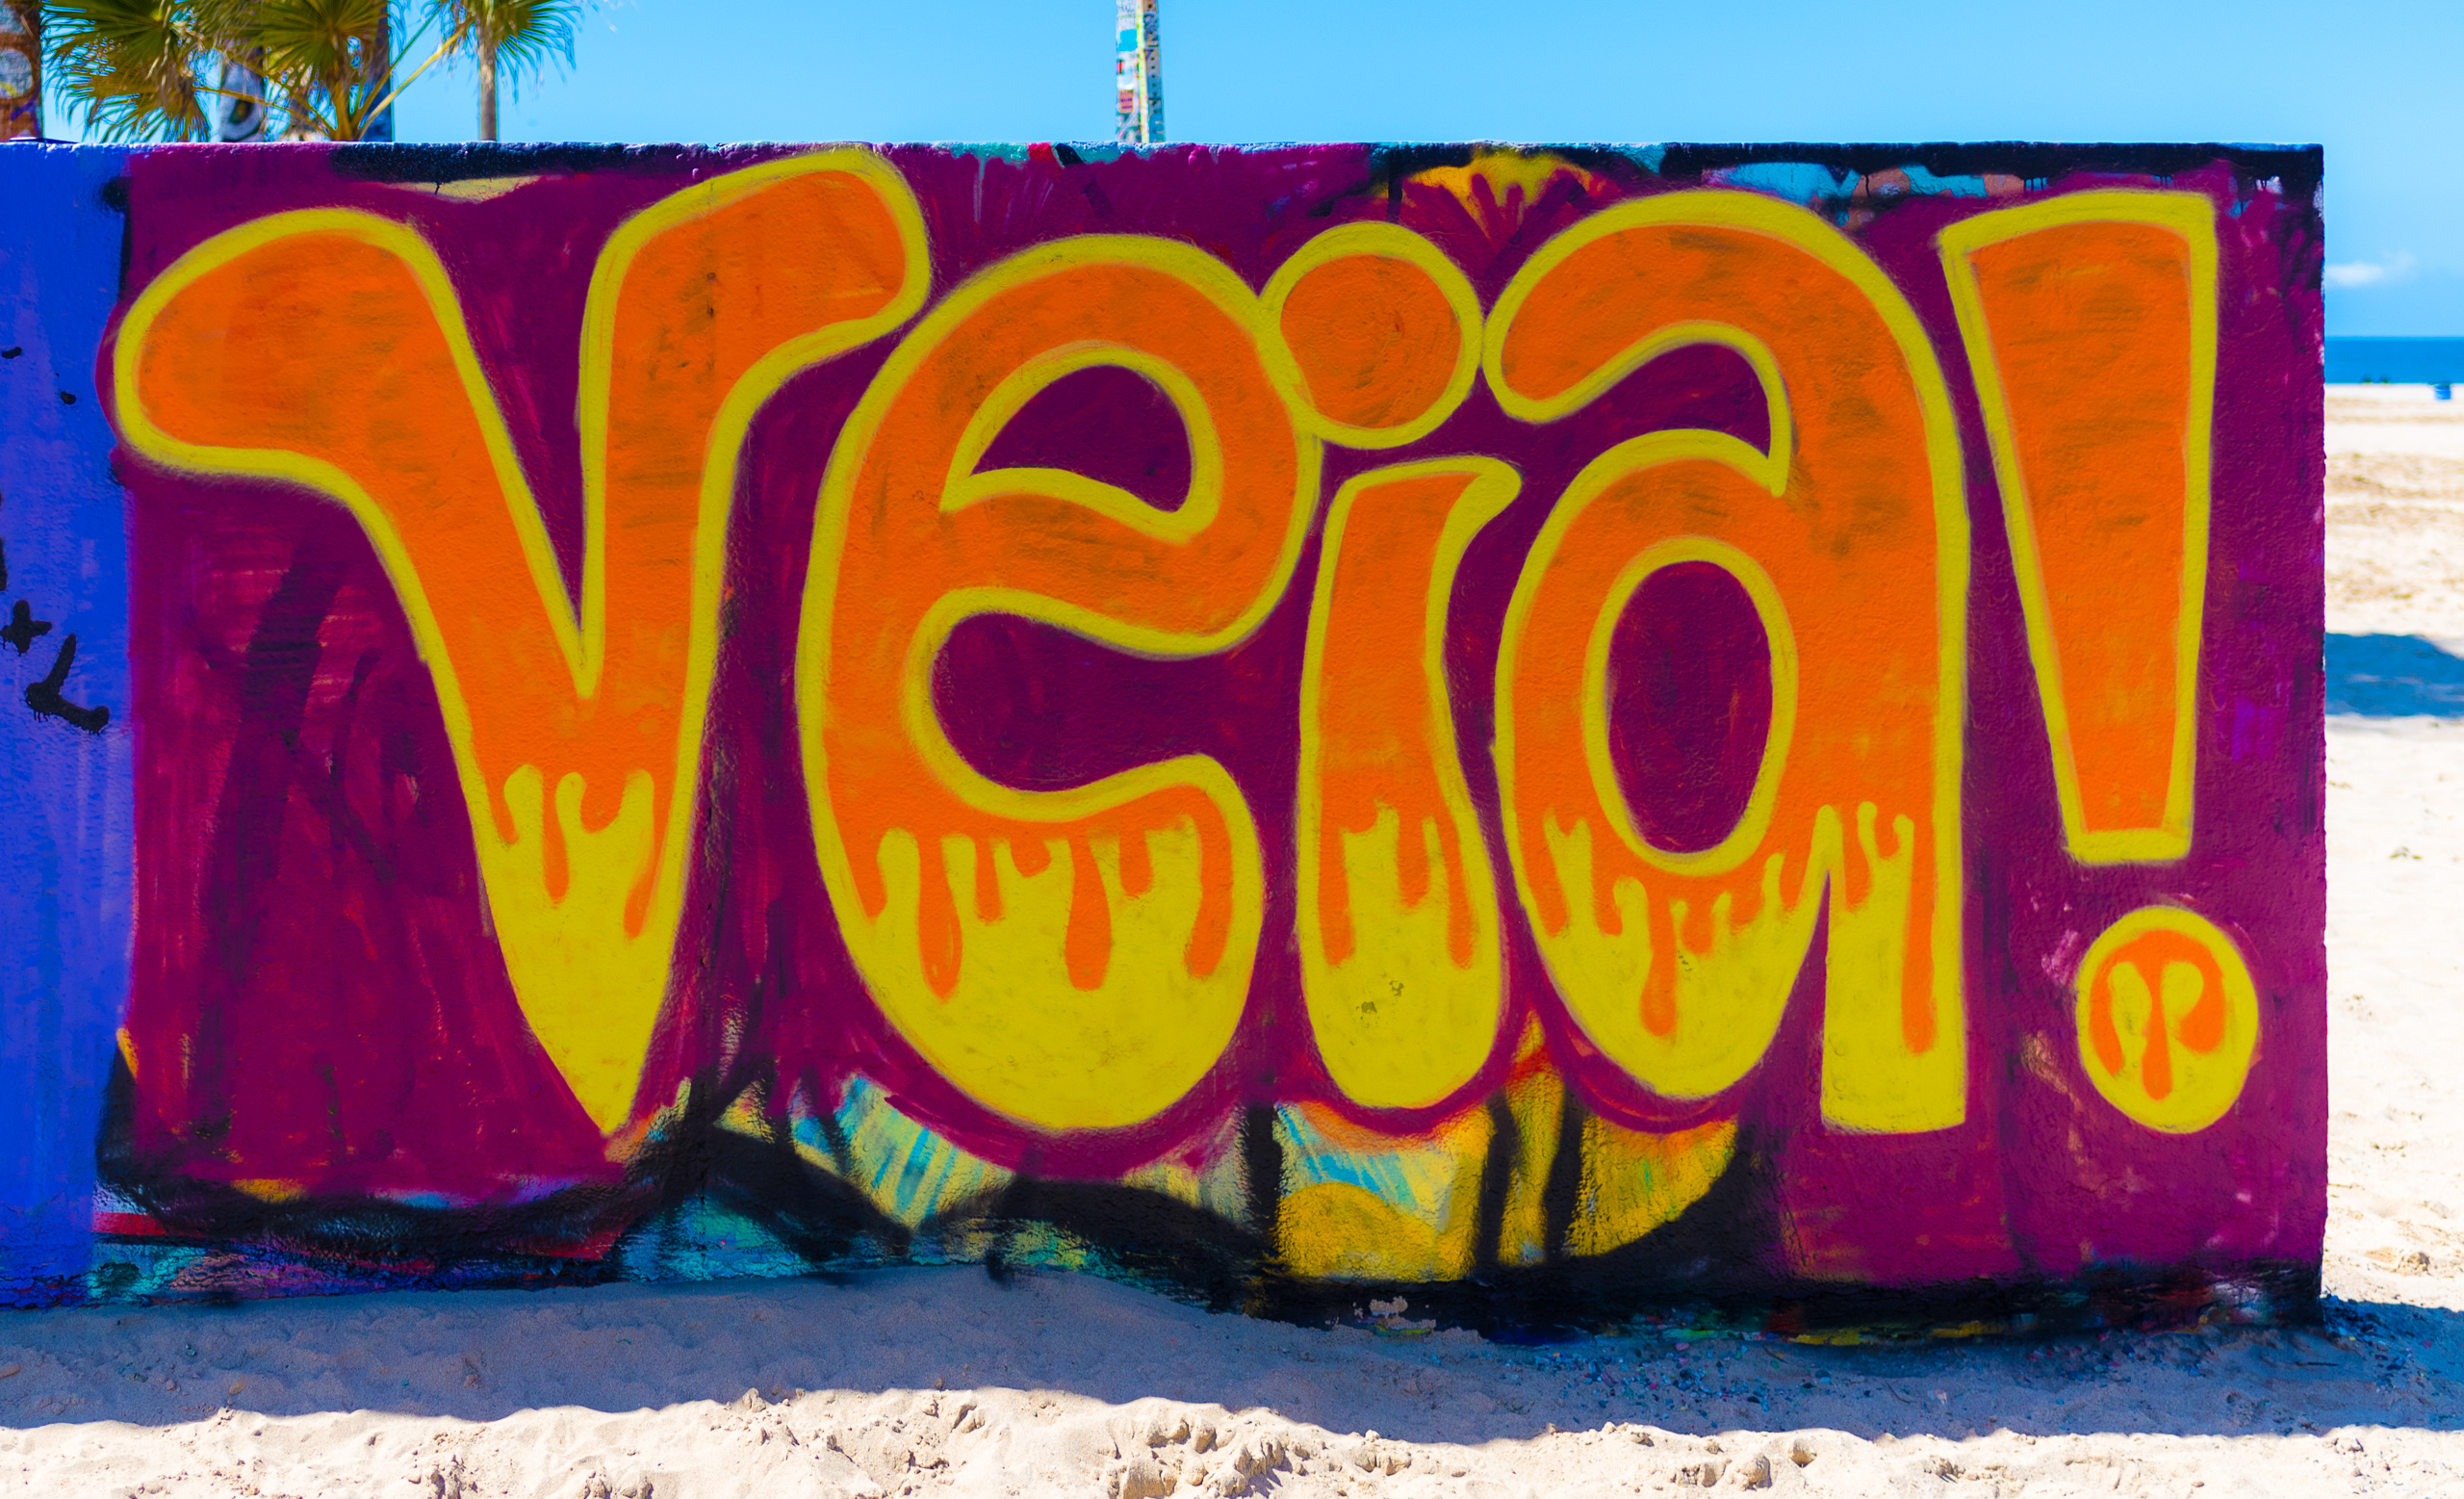 """Veia!"" as painted at the Venice Beach Legal Art Walls by Kay Luz"